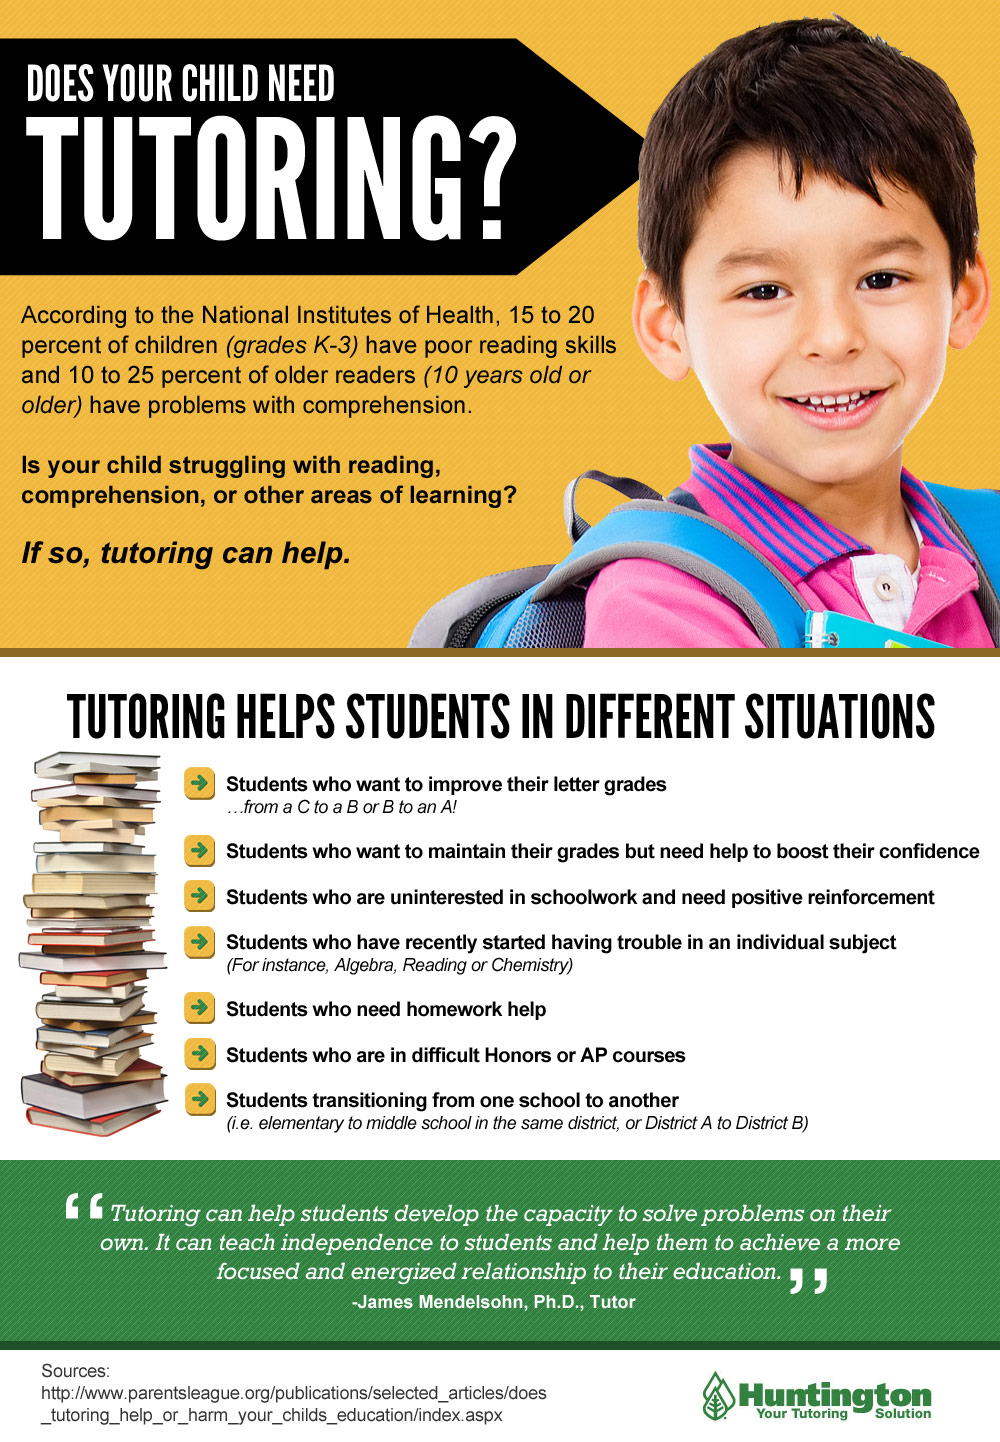 Does Your Child Need Tutoring?